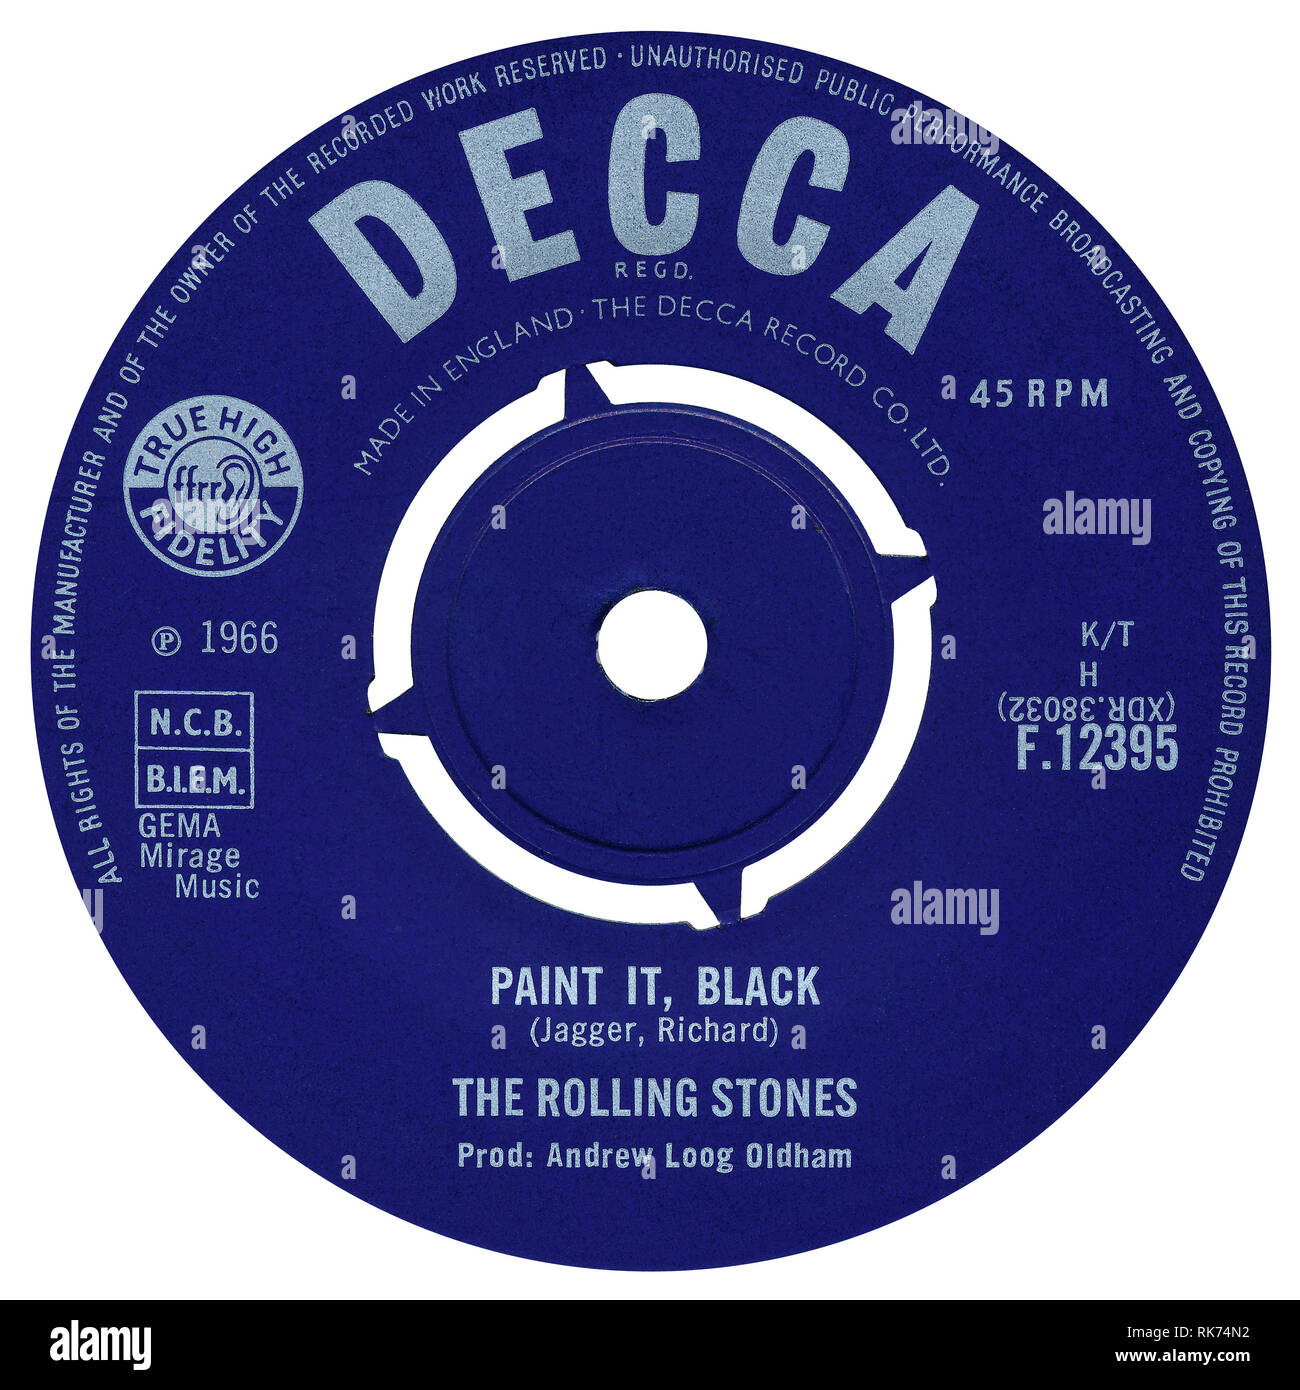 UK 45 rpm single of Paint It, Black by The Rolling Stones on the Decca label from 1966. Written by Mick Jagger and Keith Richard and produced by Andrew Loog Oldham. - Stock Image